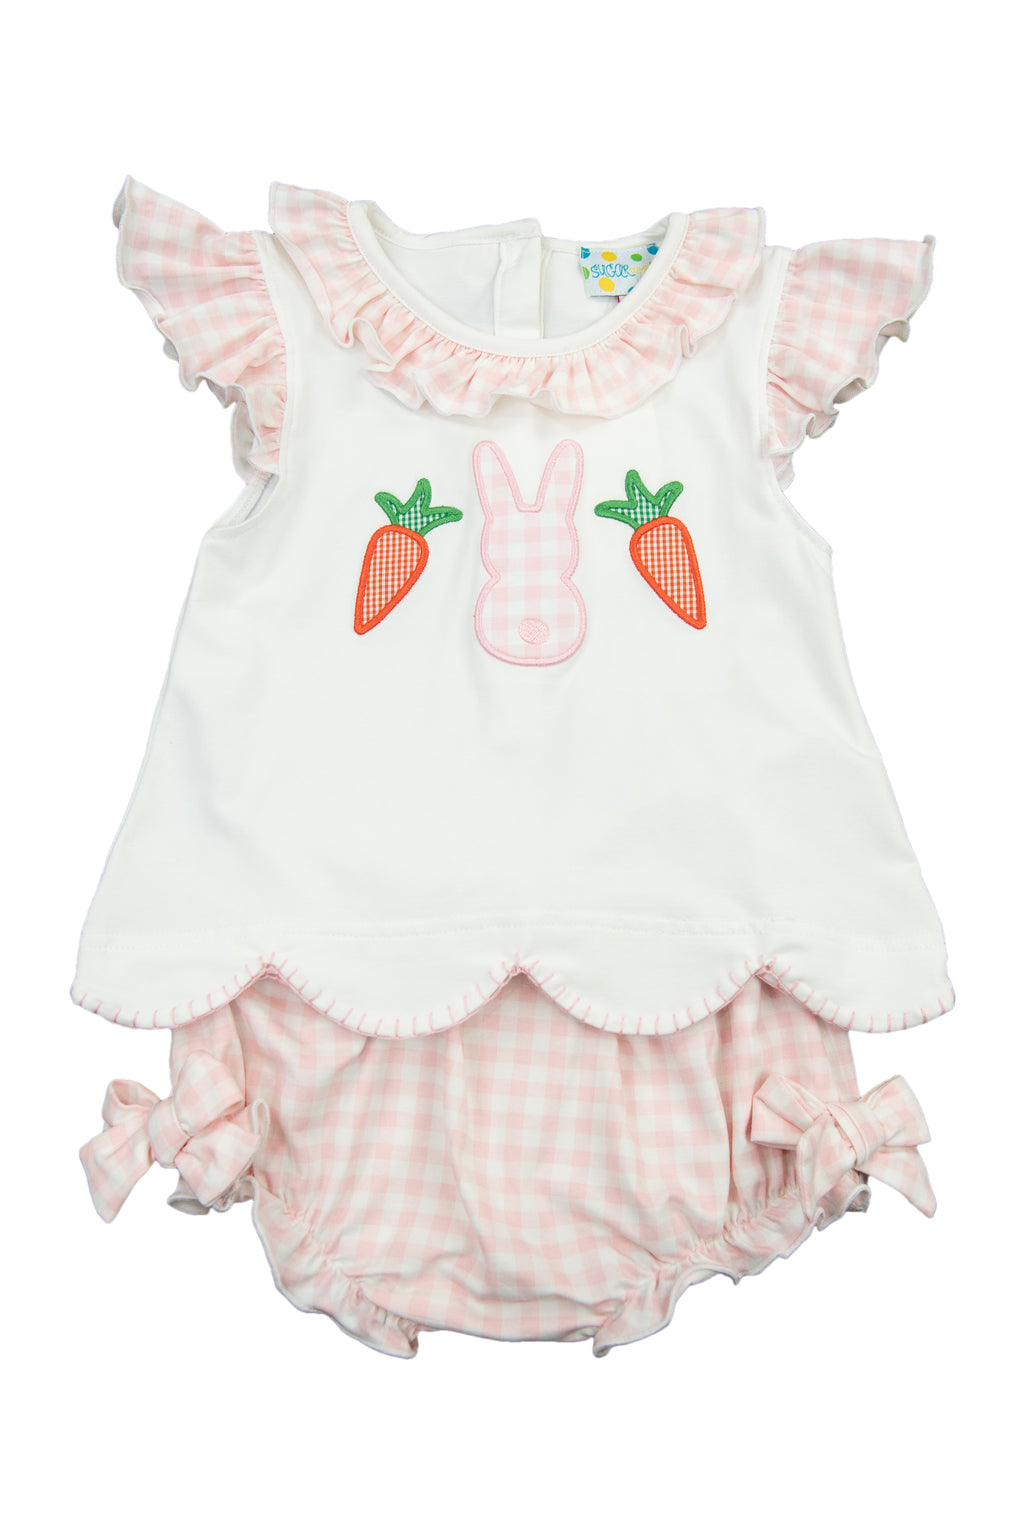 Girls Knit Gingham Bunny Diaper Set